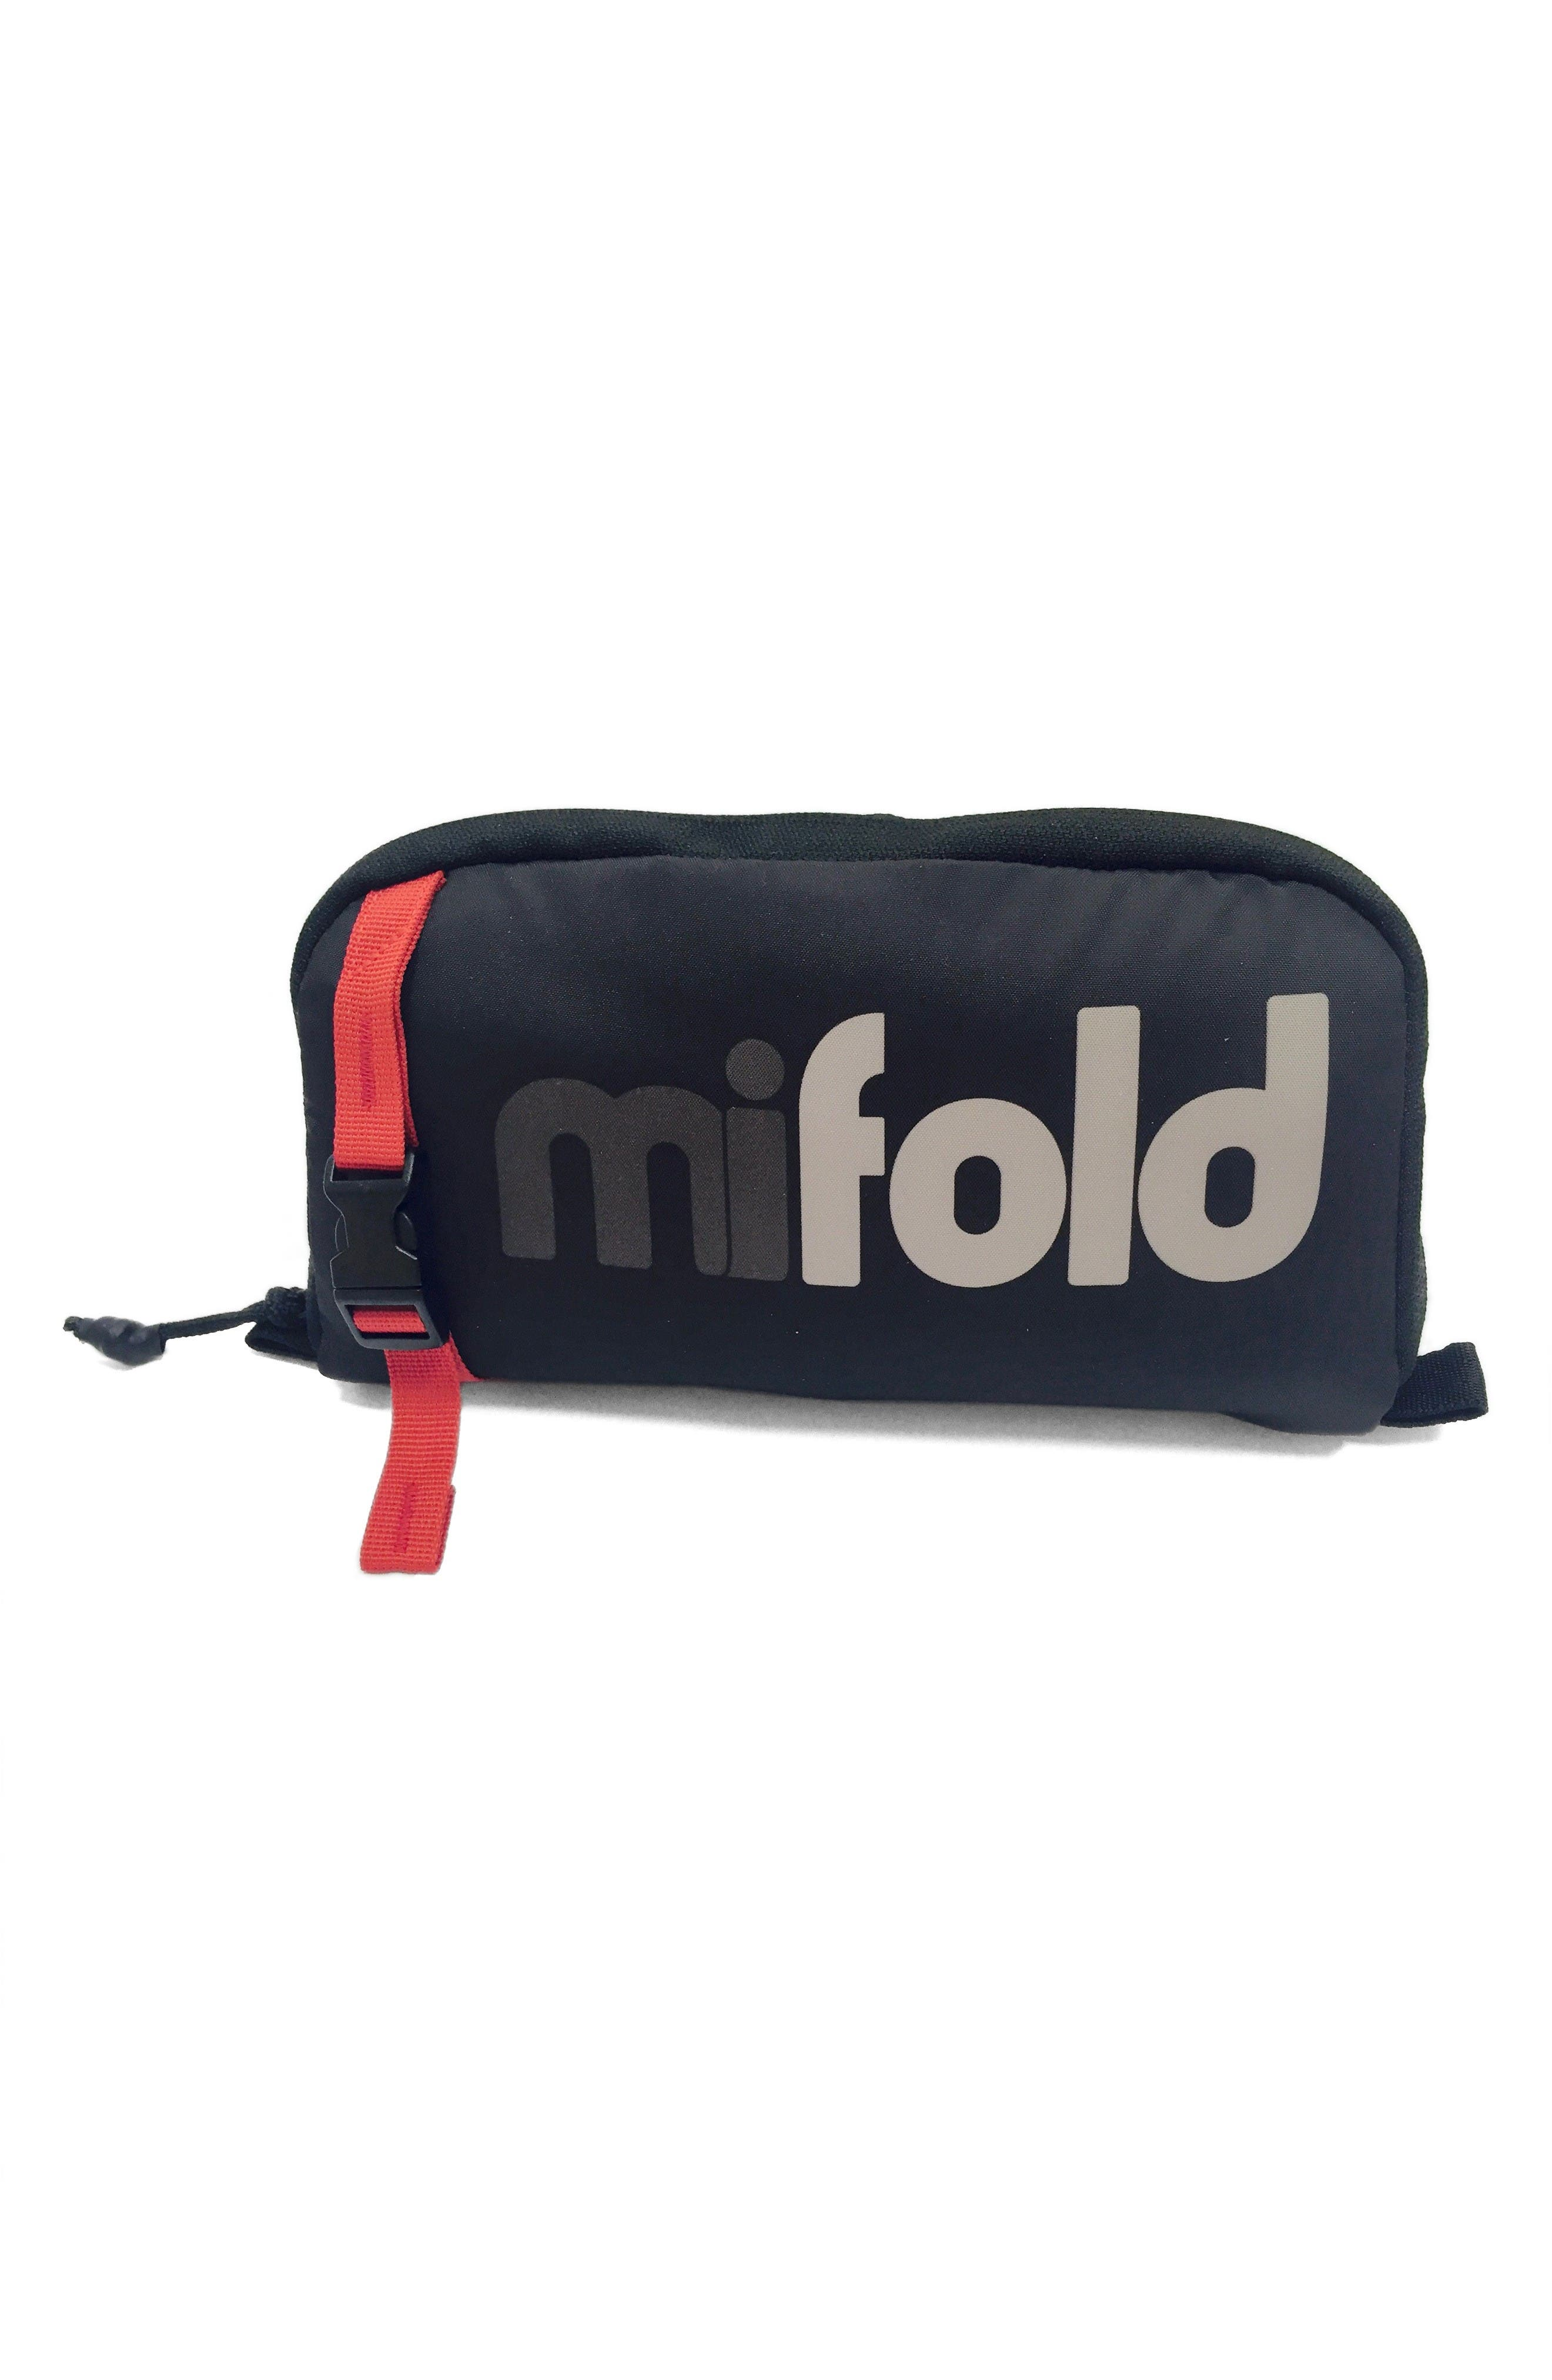 Main Image - Mifold Designer Carry Bag for Mifold Booster Seat